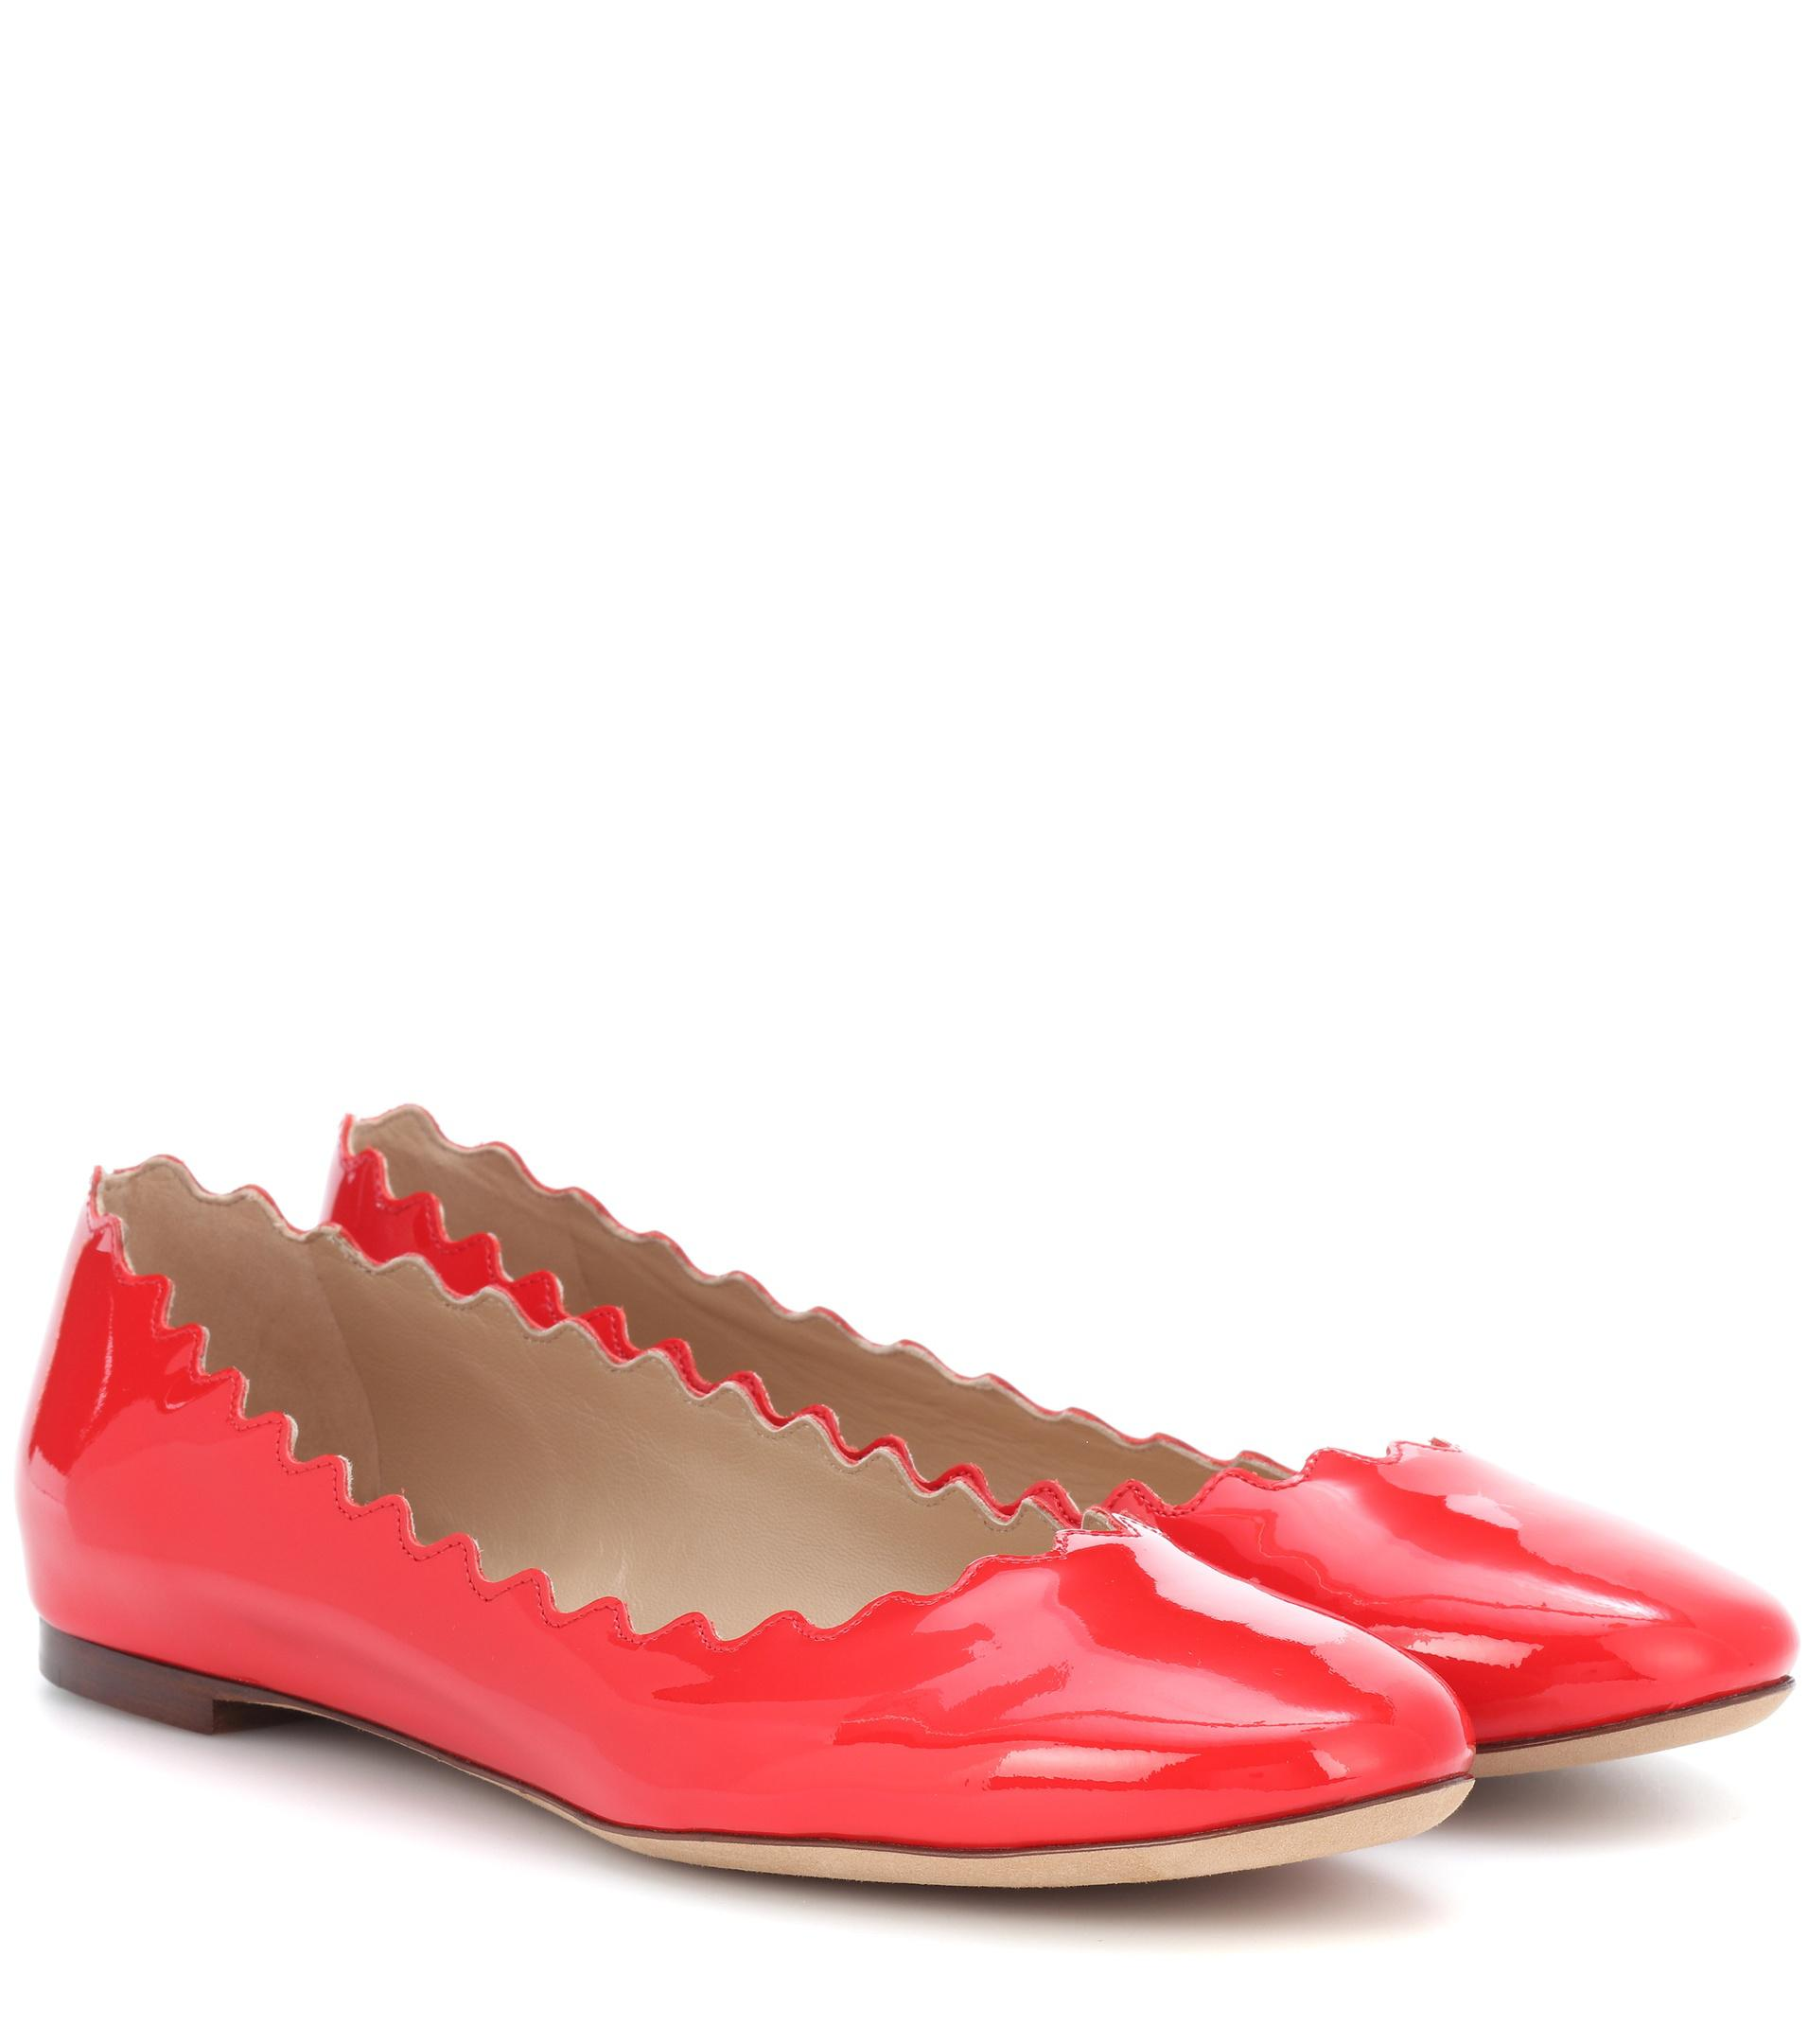 Free Shipping Choice Very Cheap For Sale Chloé Lauren Patent Leather Ballerina Factory Outlet Online Latest For Sale EzMZQD